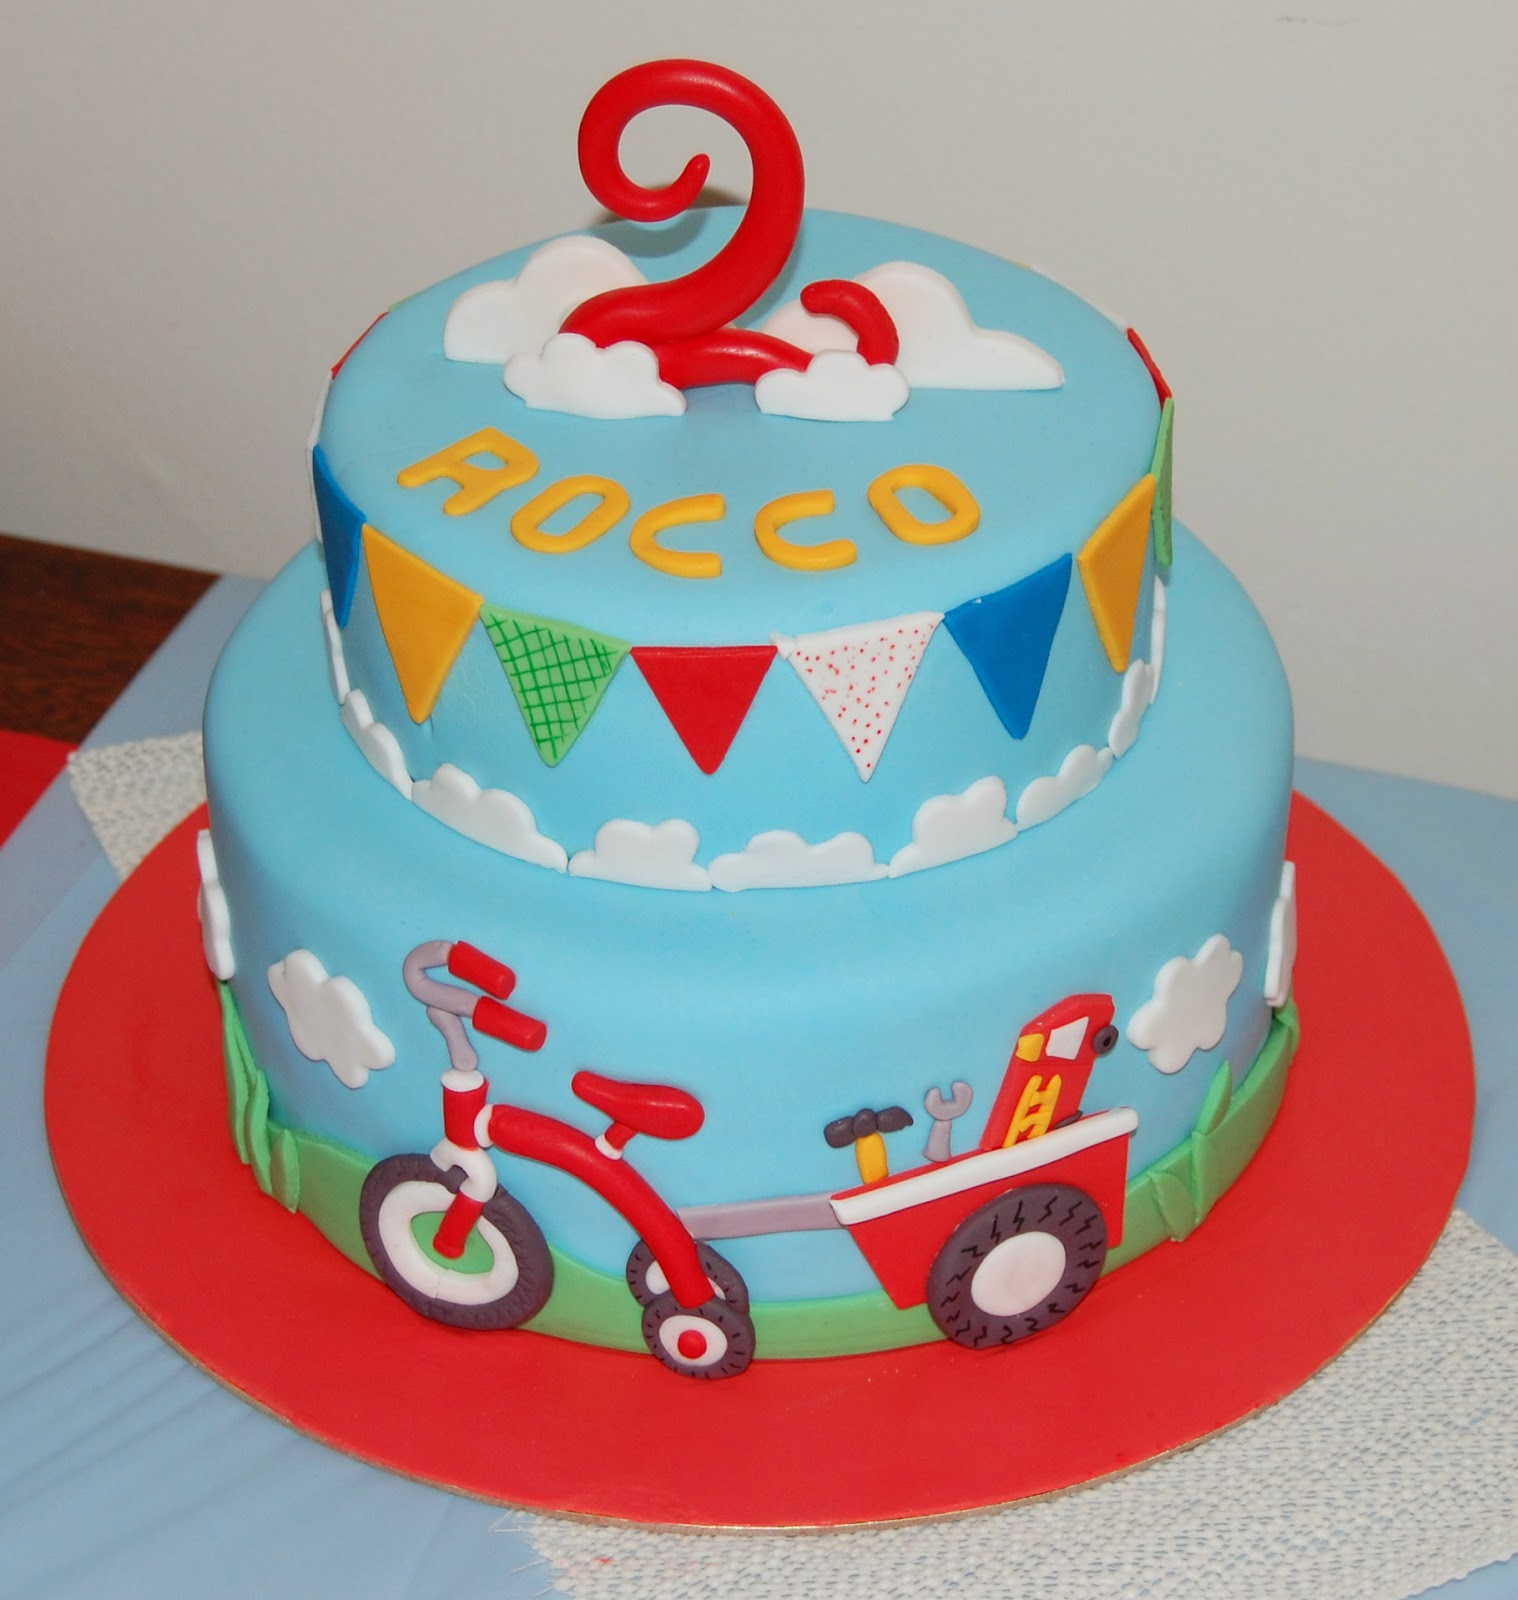 Butter Hearts Sugar Tricycle Birthday Cake: gateau anniversaire garcon